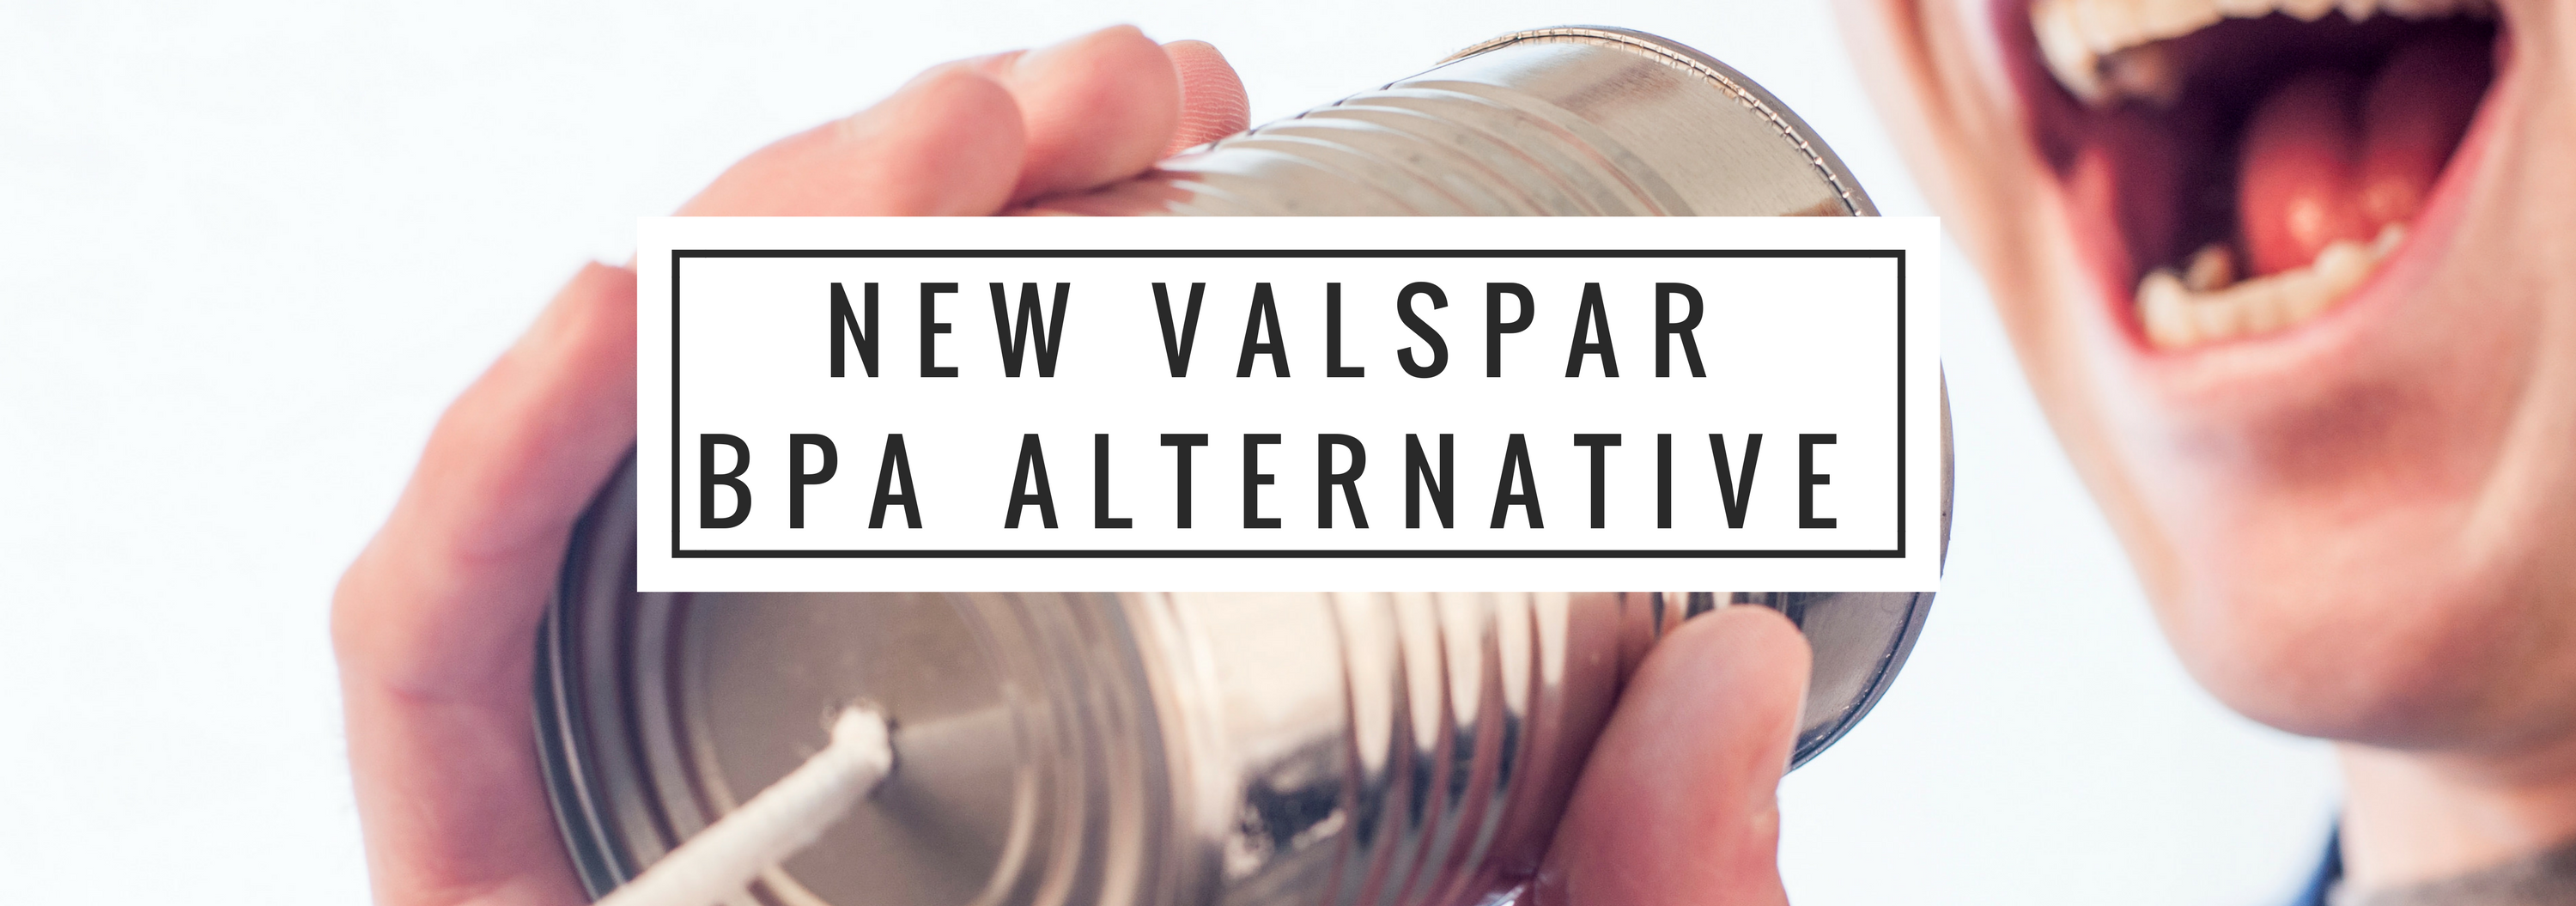 New Valspar BPA Alternative